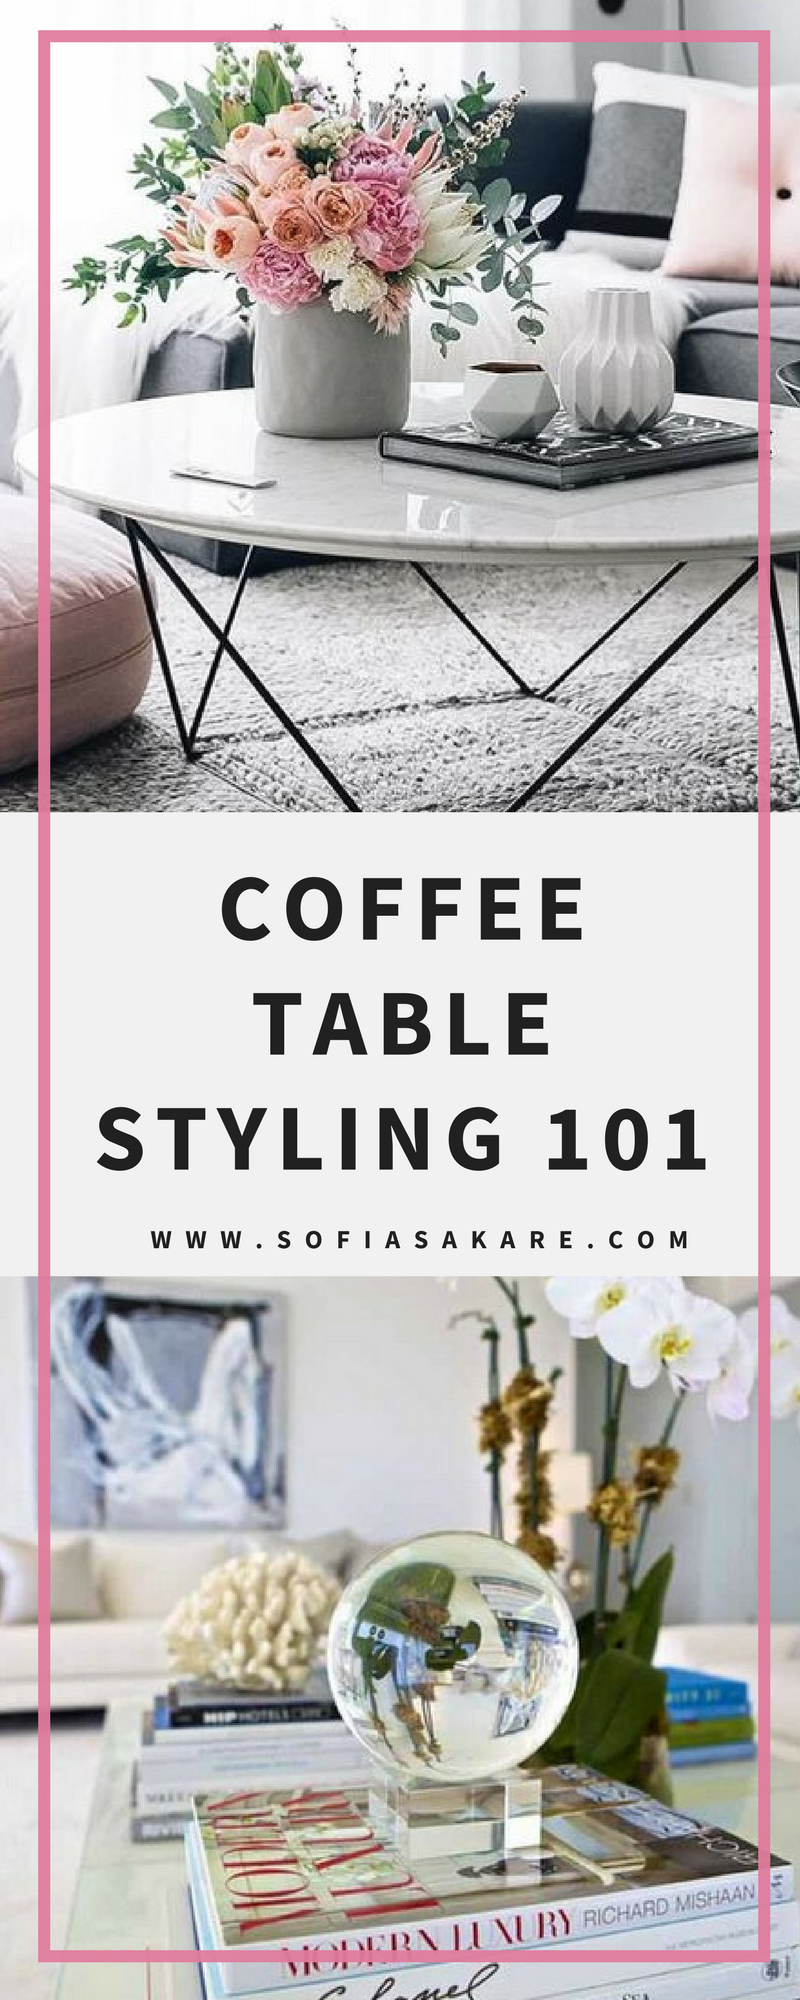 How to Style a Coffee Table SOFIA SAKARE INTERIOR DESIGN